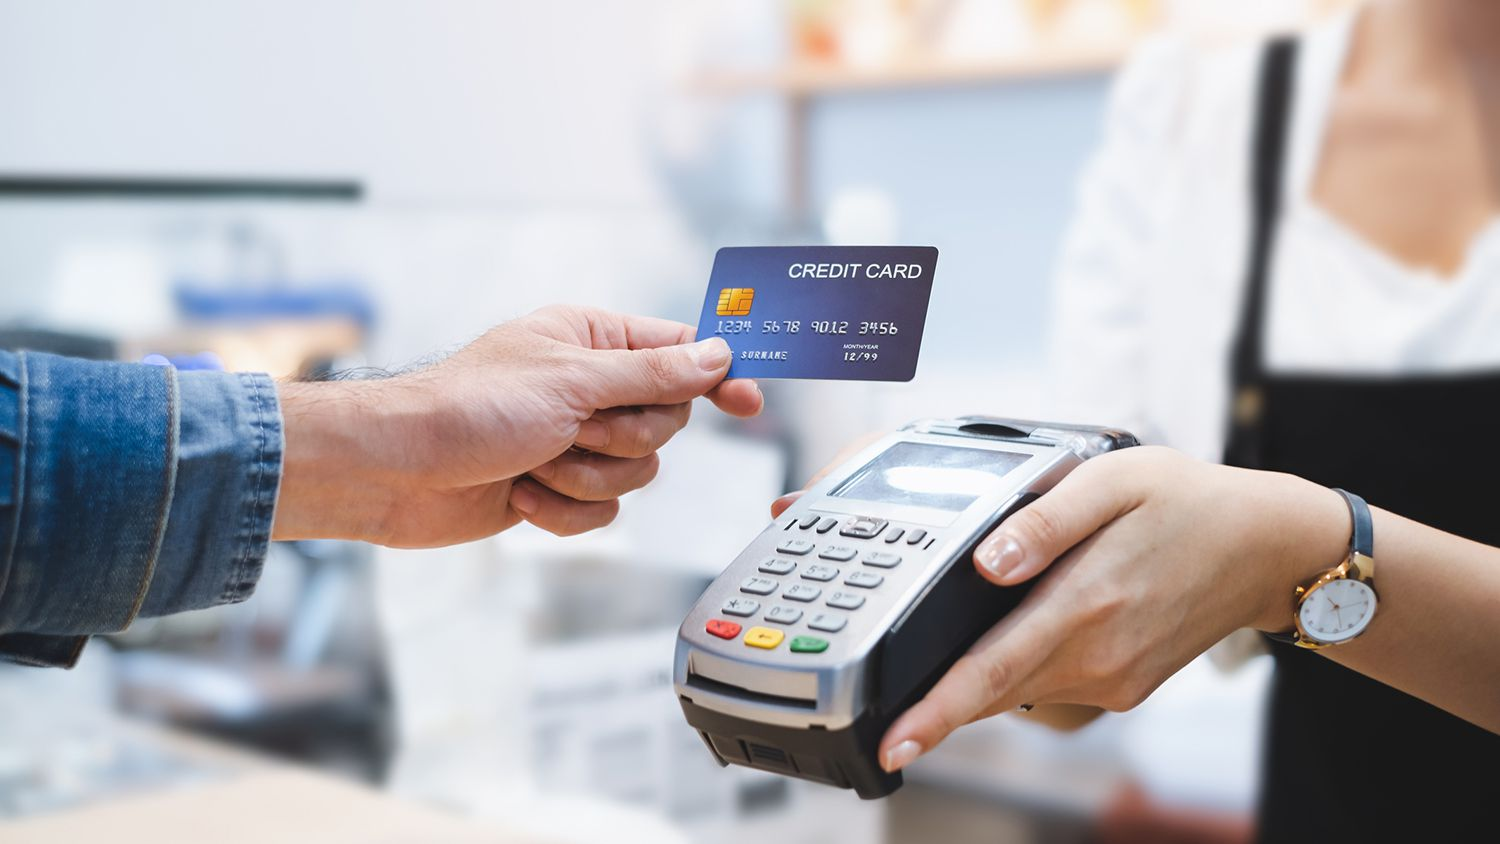 Contactless Payment Definition